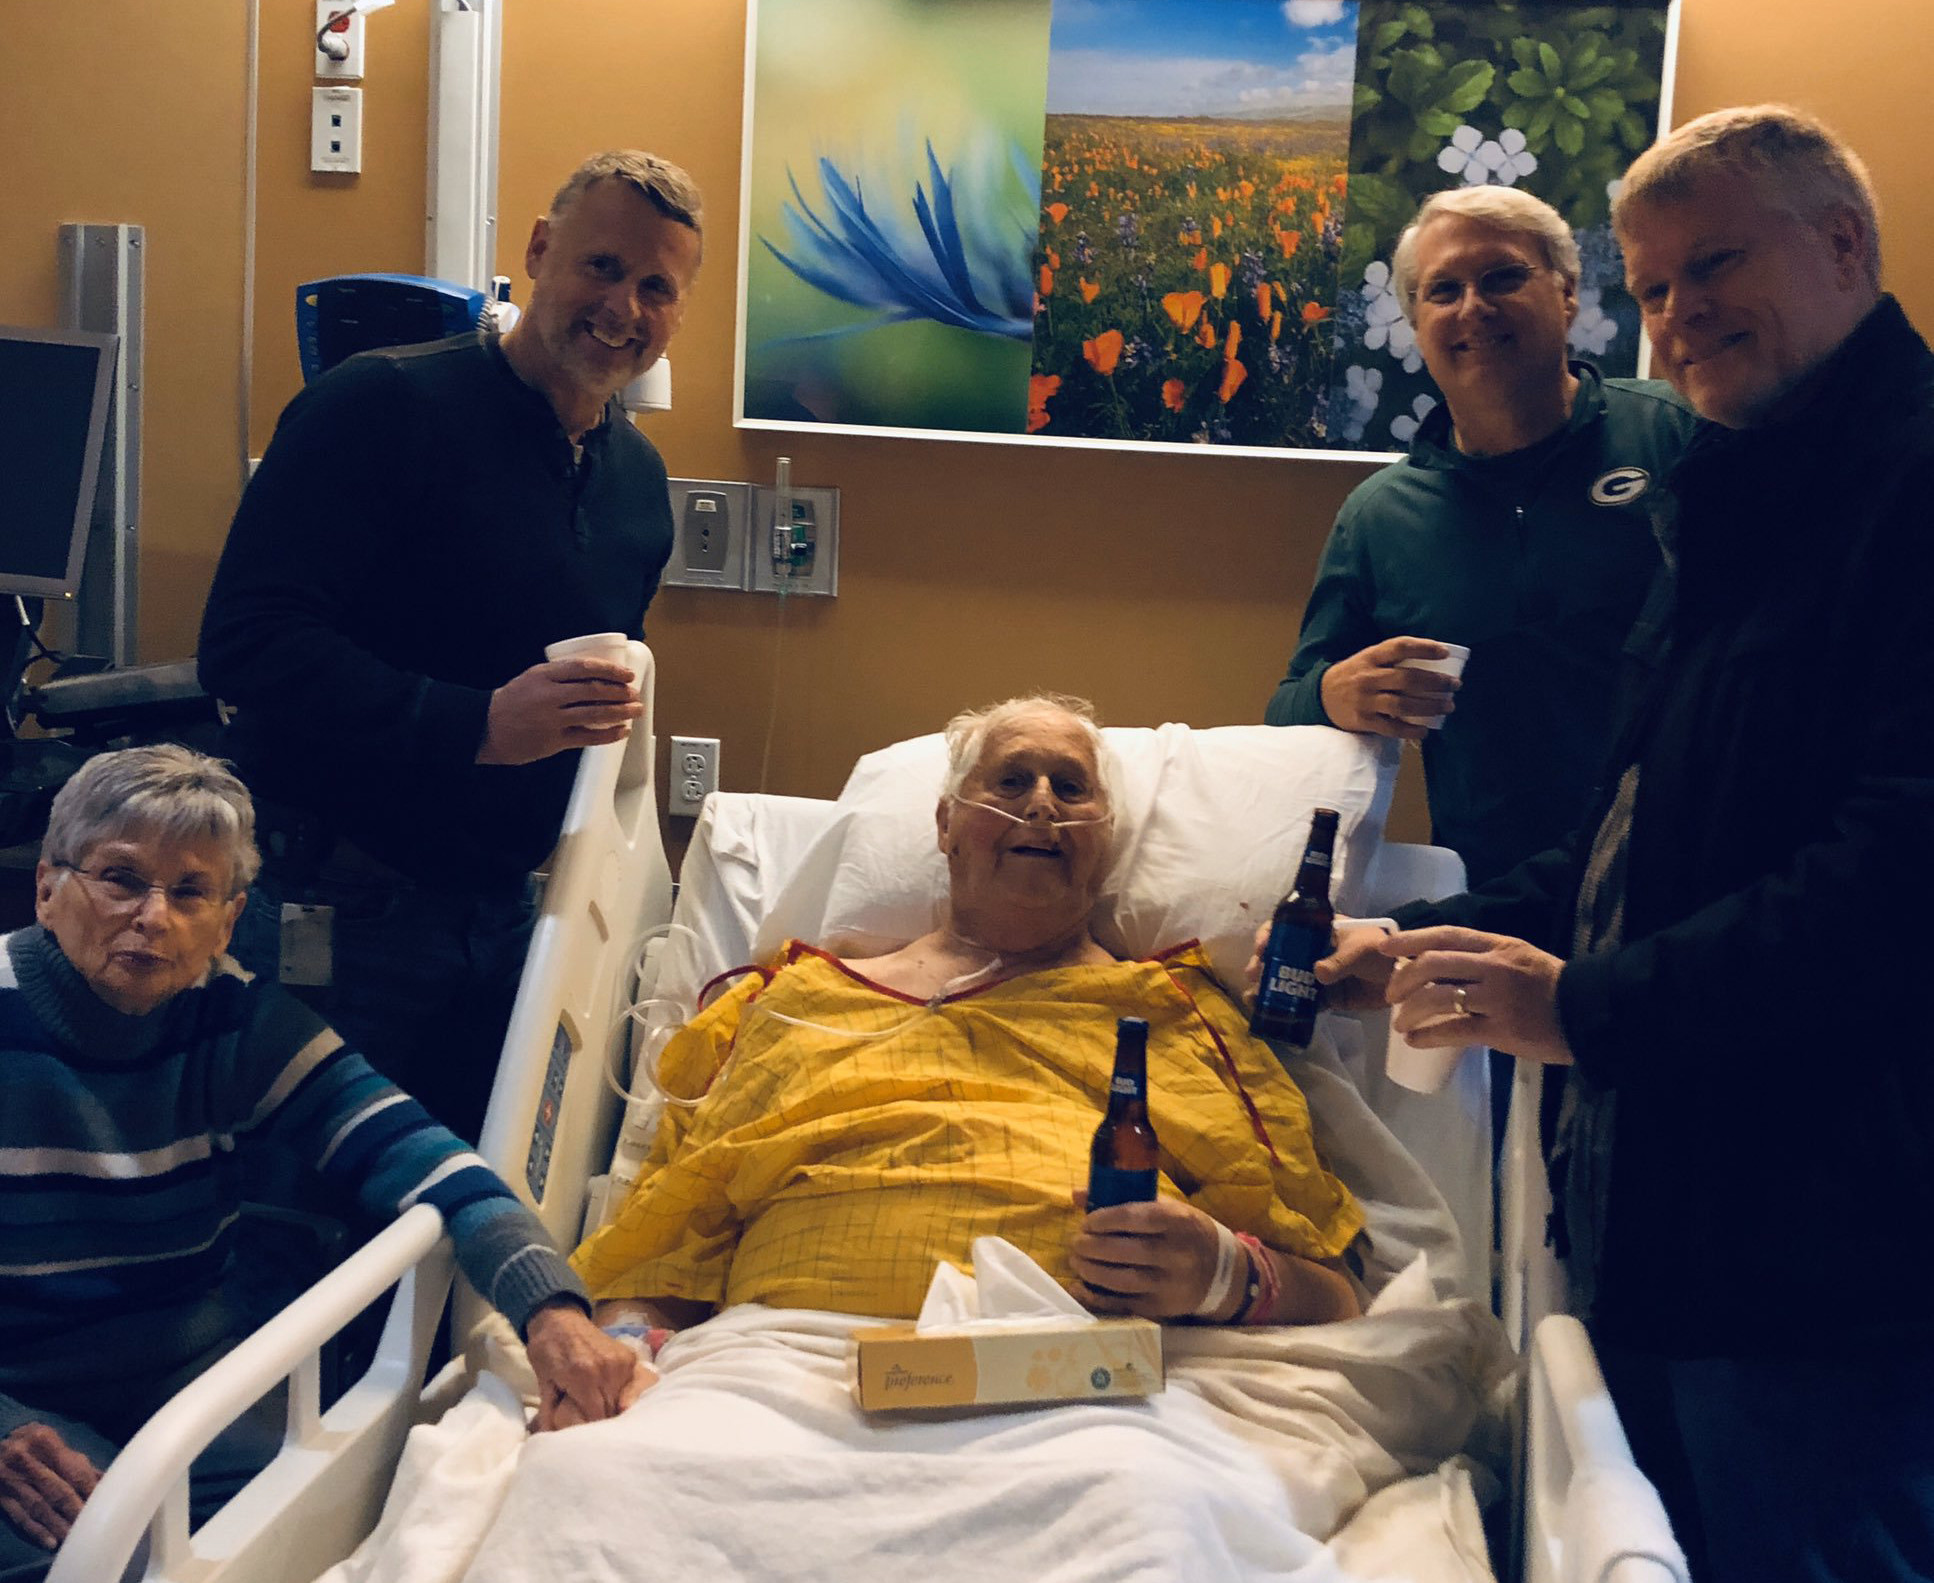 Man's last wish: Having a beer with his sons